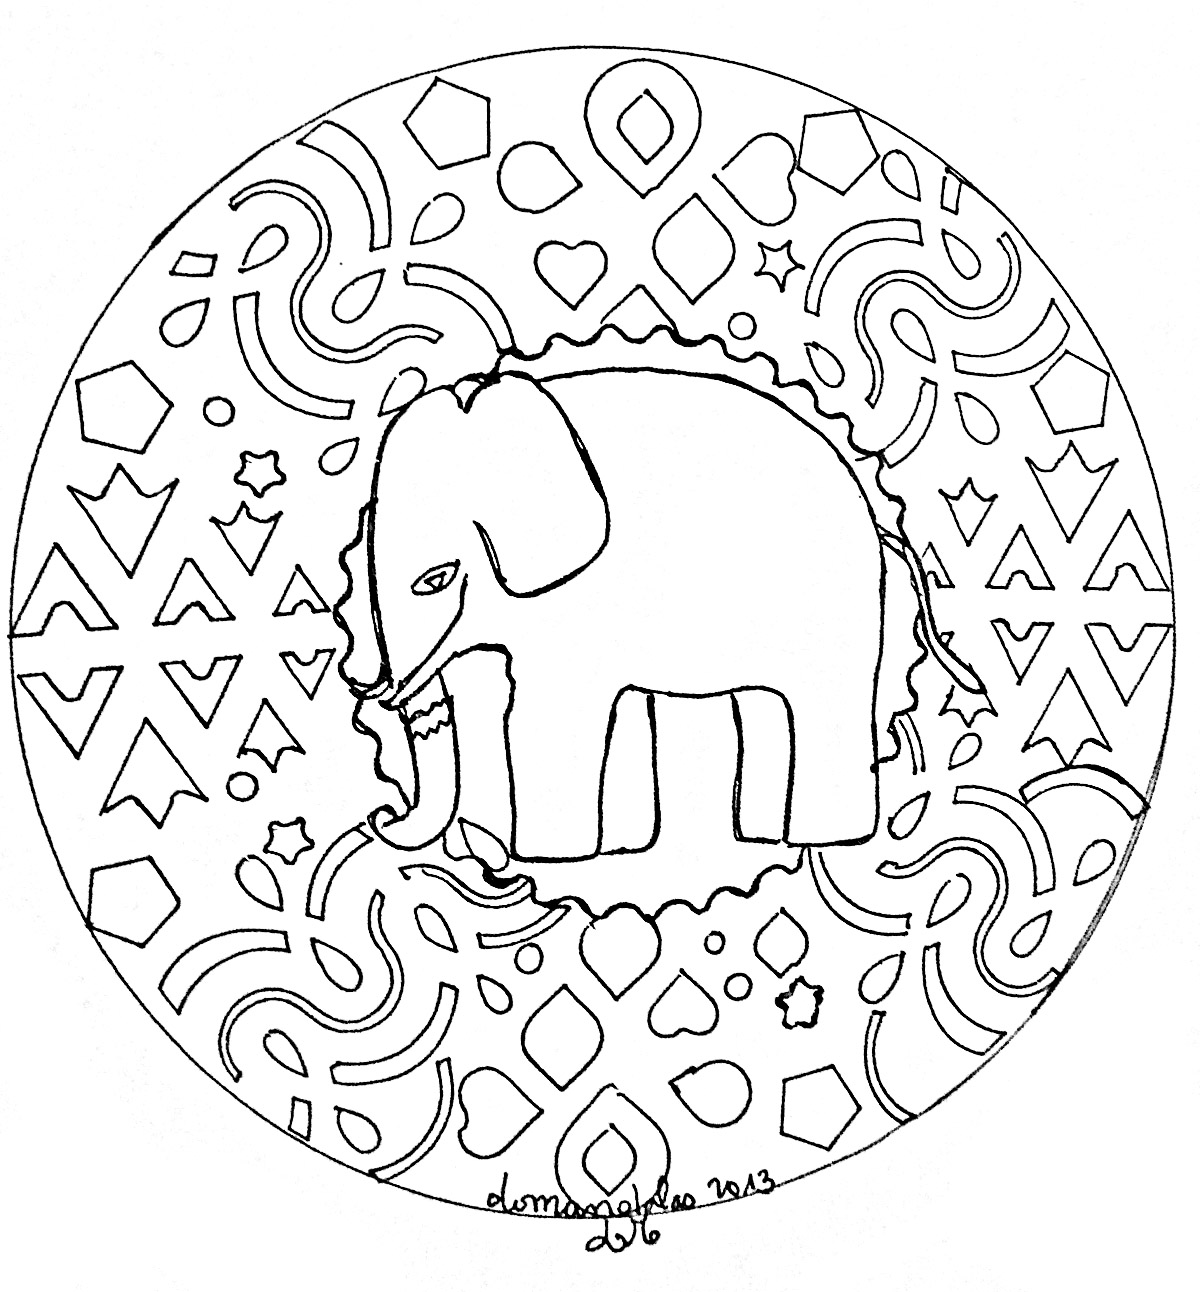 easy animal mandala coloring pages image result for mandala pig animal coloring pages pages coloring animal mandala easy